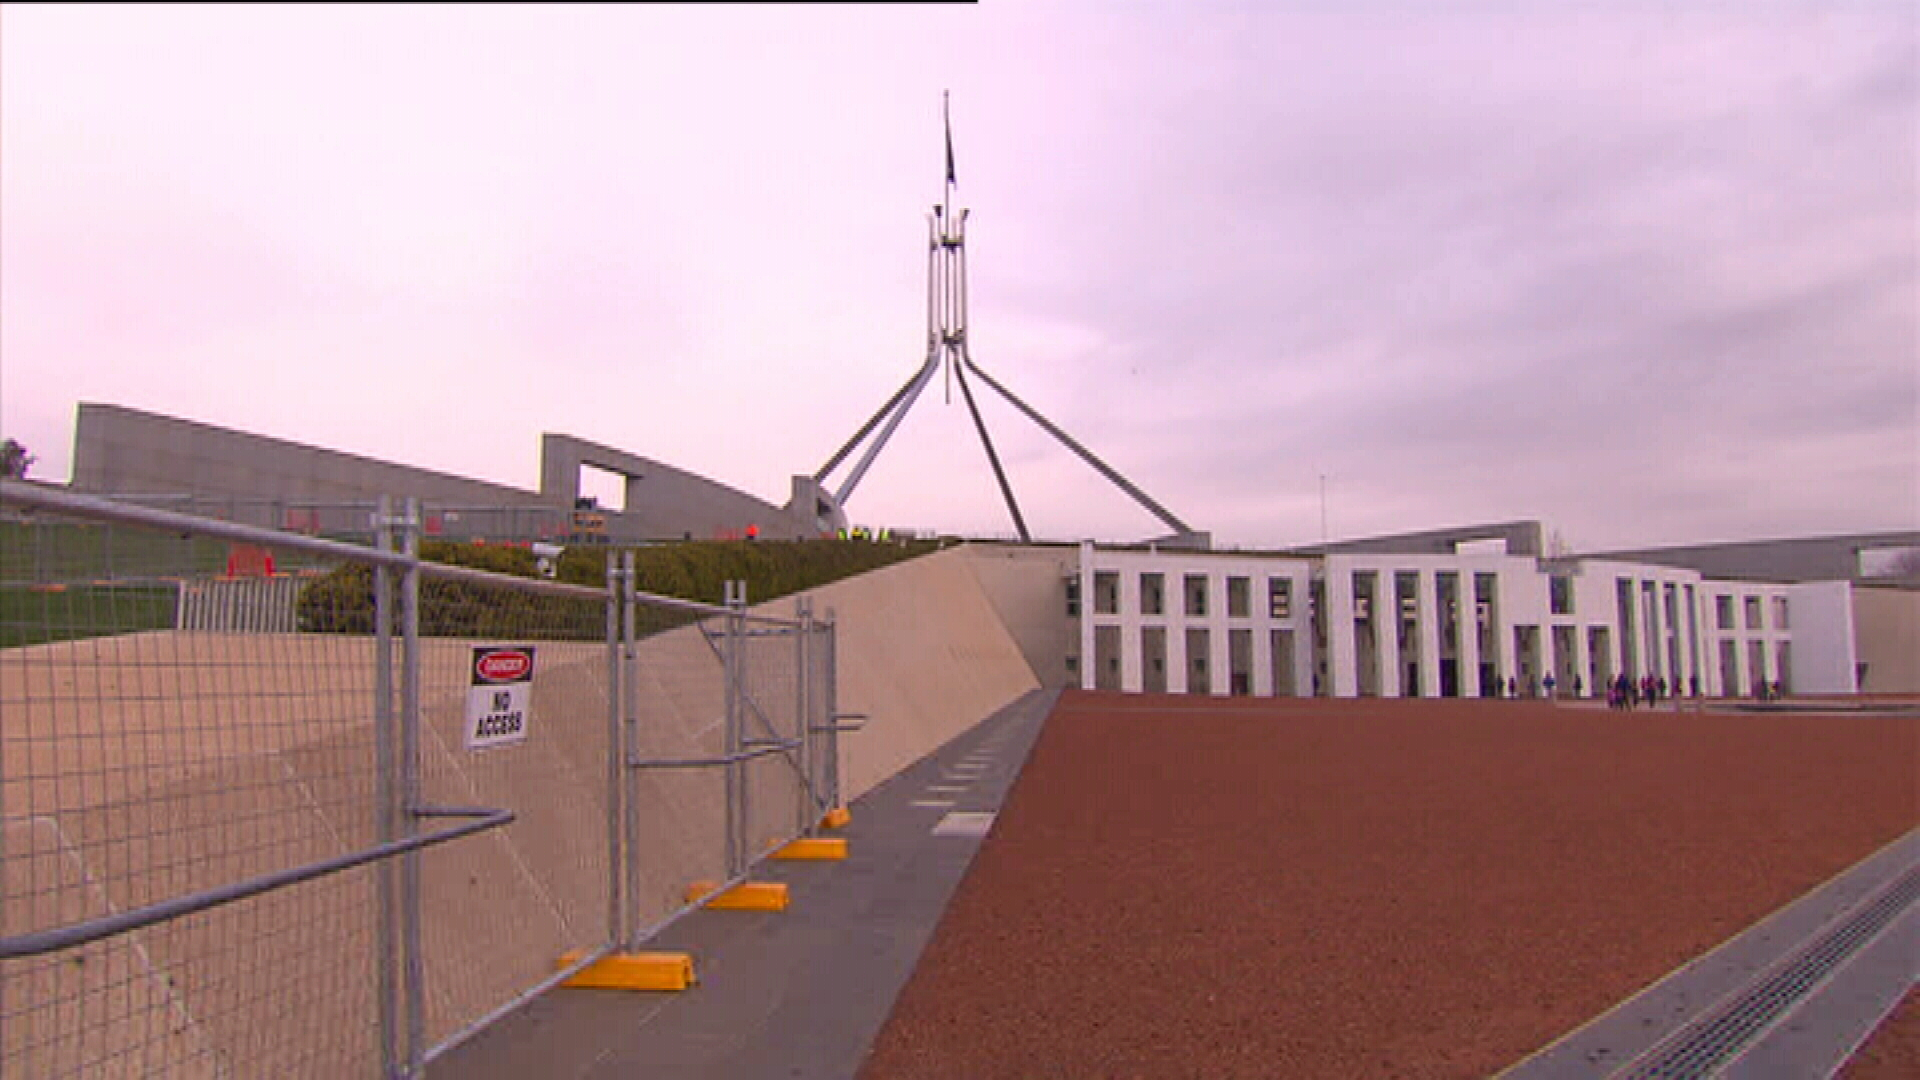 Parliament House renovations: Steelvision holding up